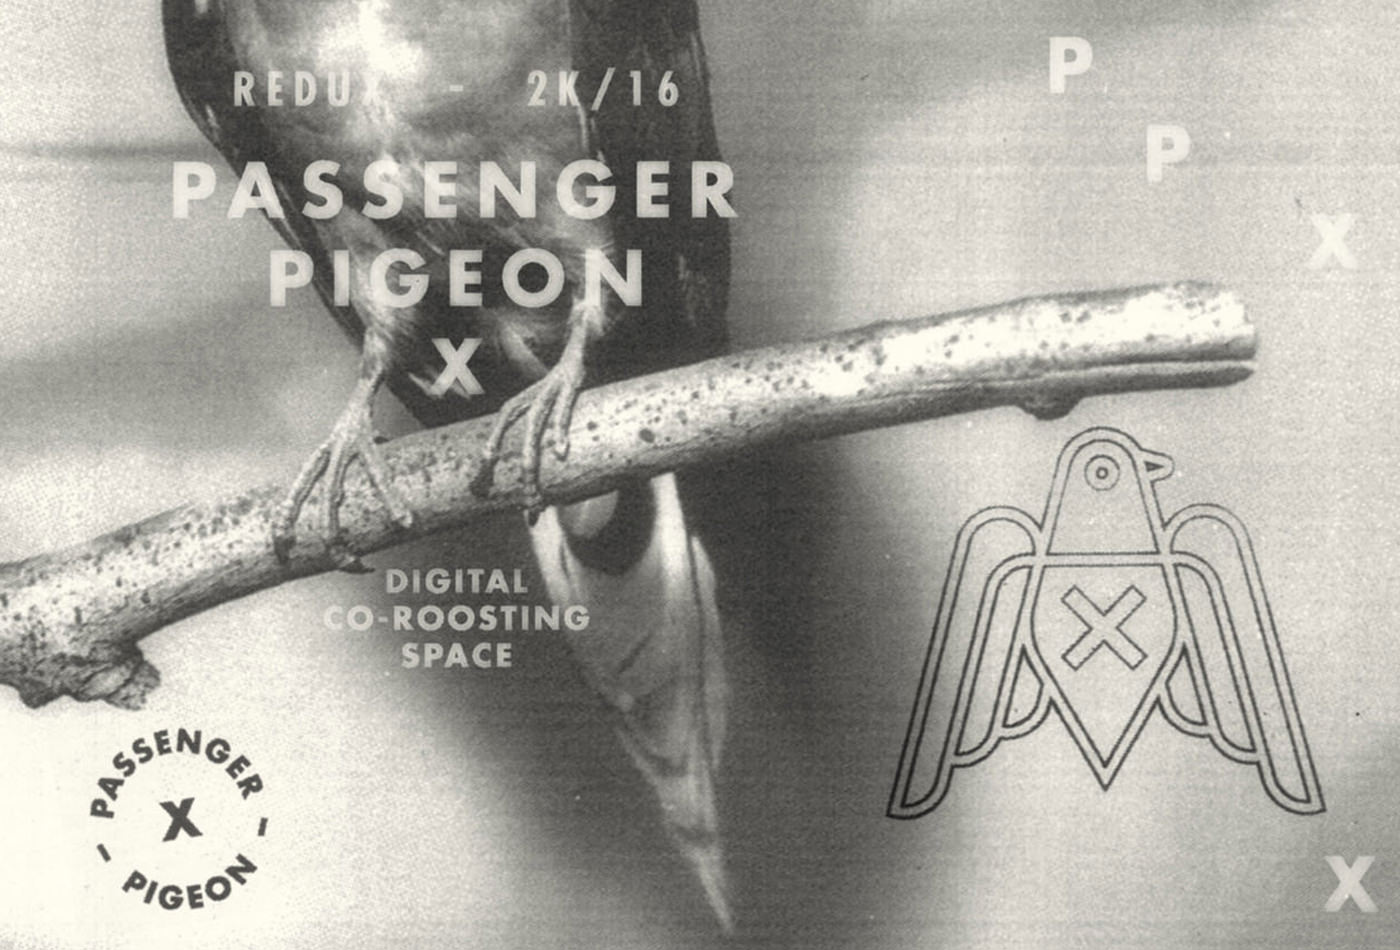 PPX-passenger-pigeon-x-pigeonaire-nantes-philadelphia-digital-coworking-space-philly-digital